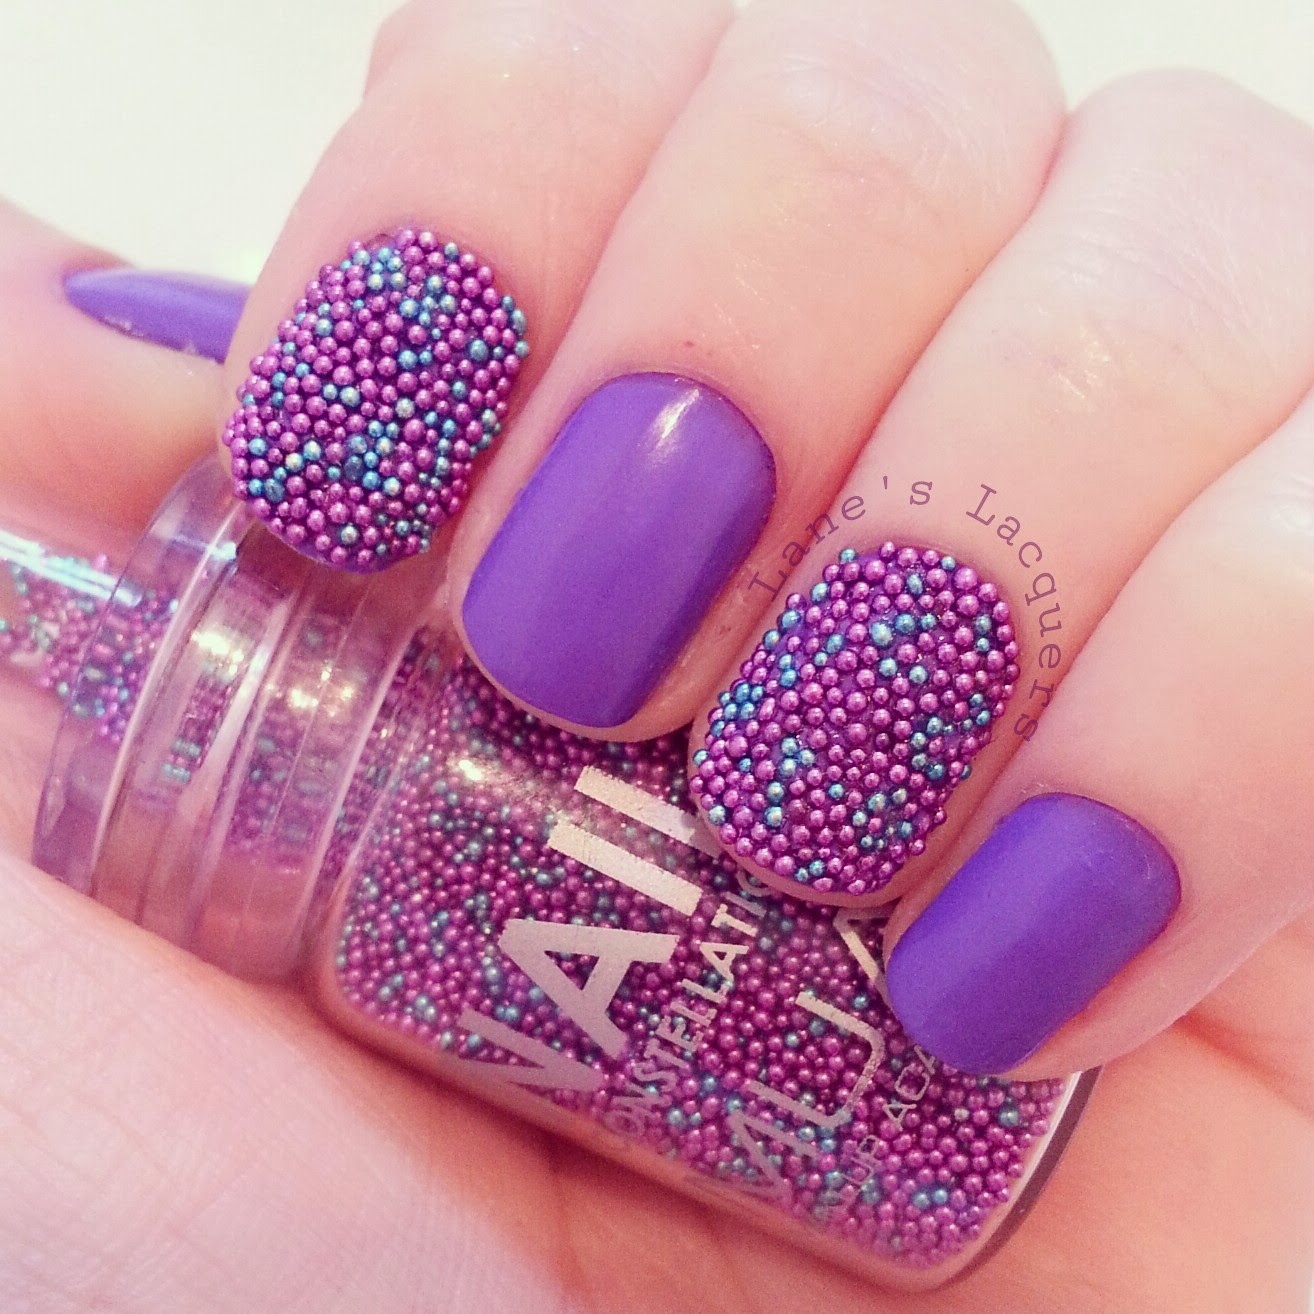 GOT-polish-challenge-purple-caviar-beads-nails